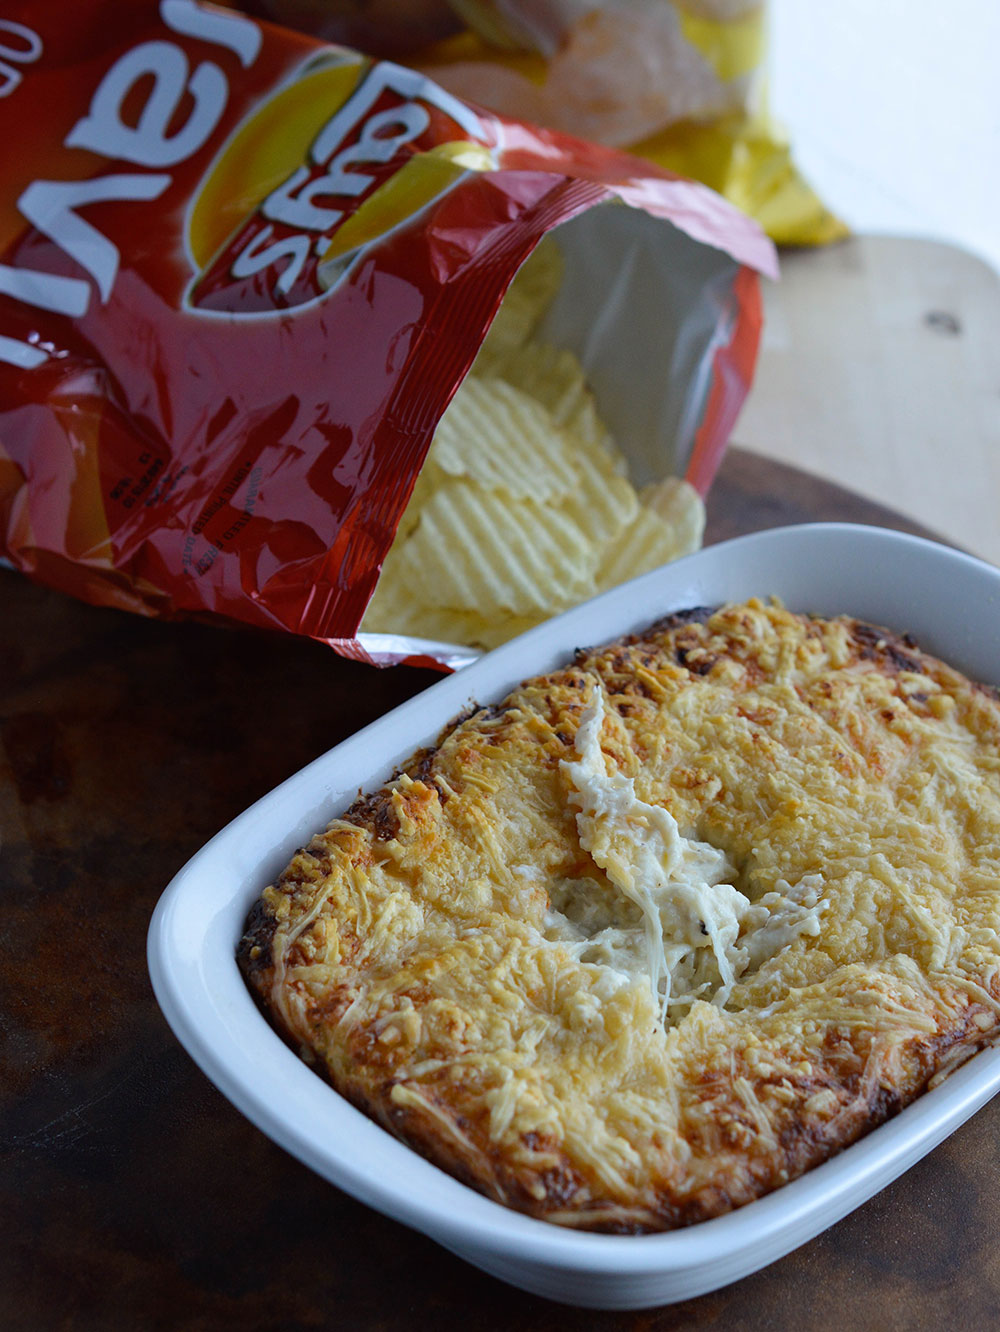 40 Clove Garlic Chicken Dip Recipe - This unforgettable appetizer has an extreme roasted garlic flavor! Use rotisserie chicken and extra cheese in this easy dip recipe!